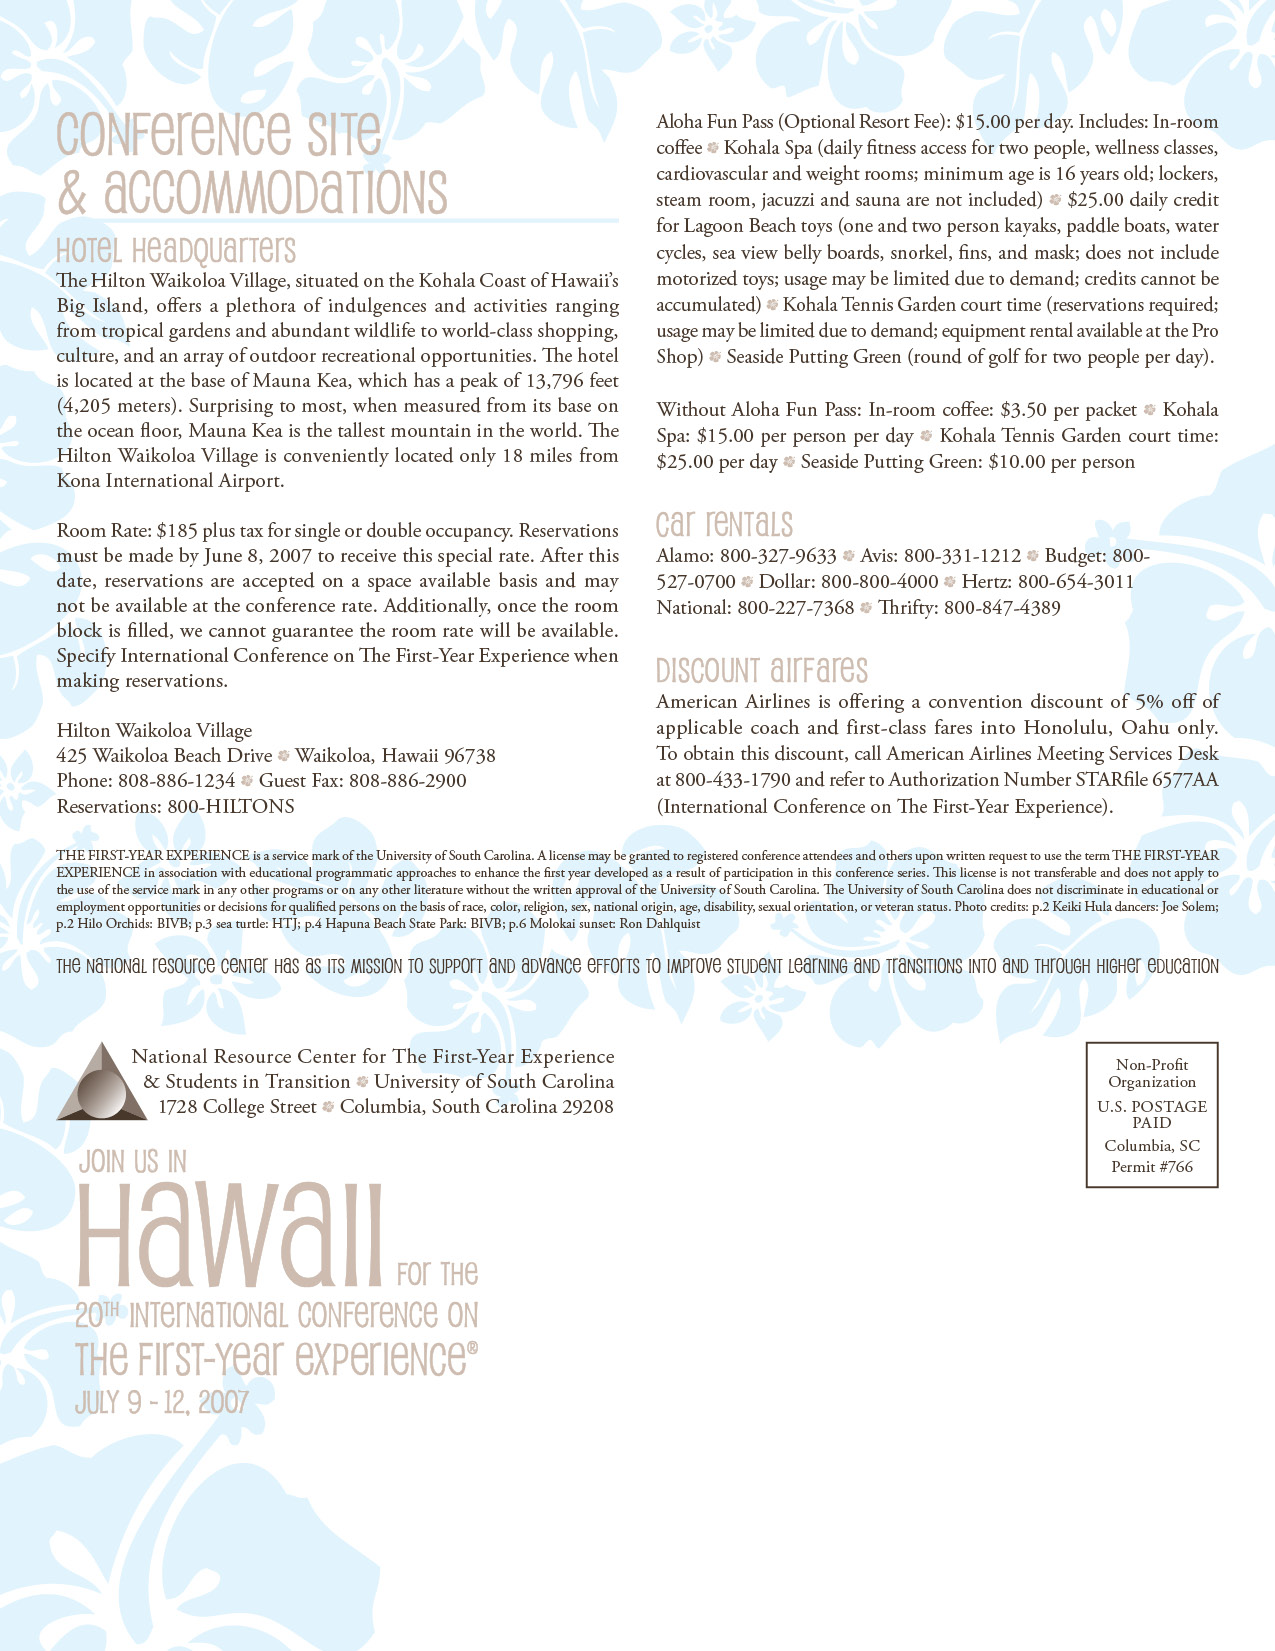 Design for International Conference in Hawaii Back Cover and Mailer section